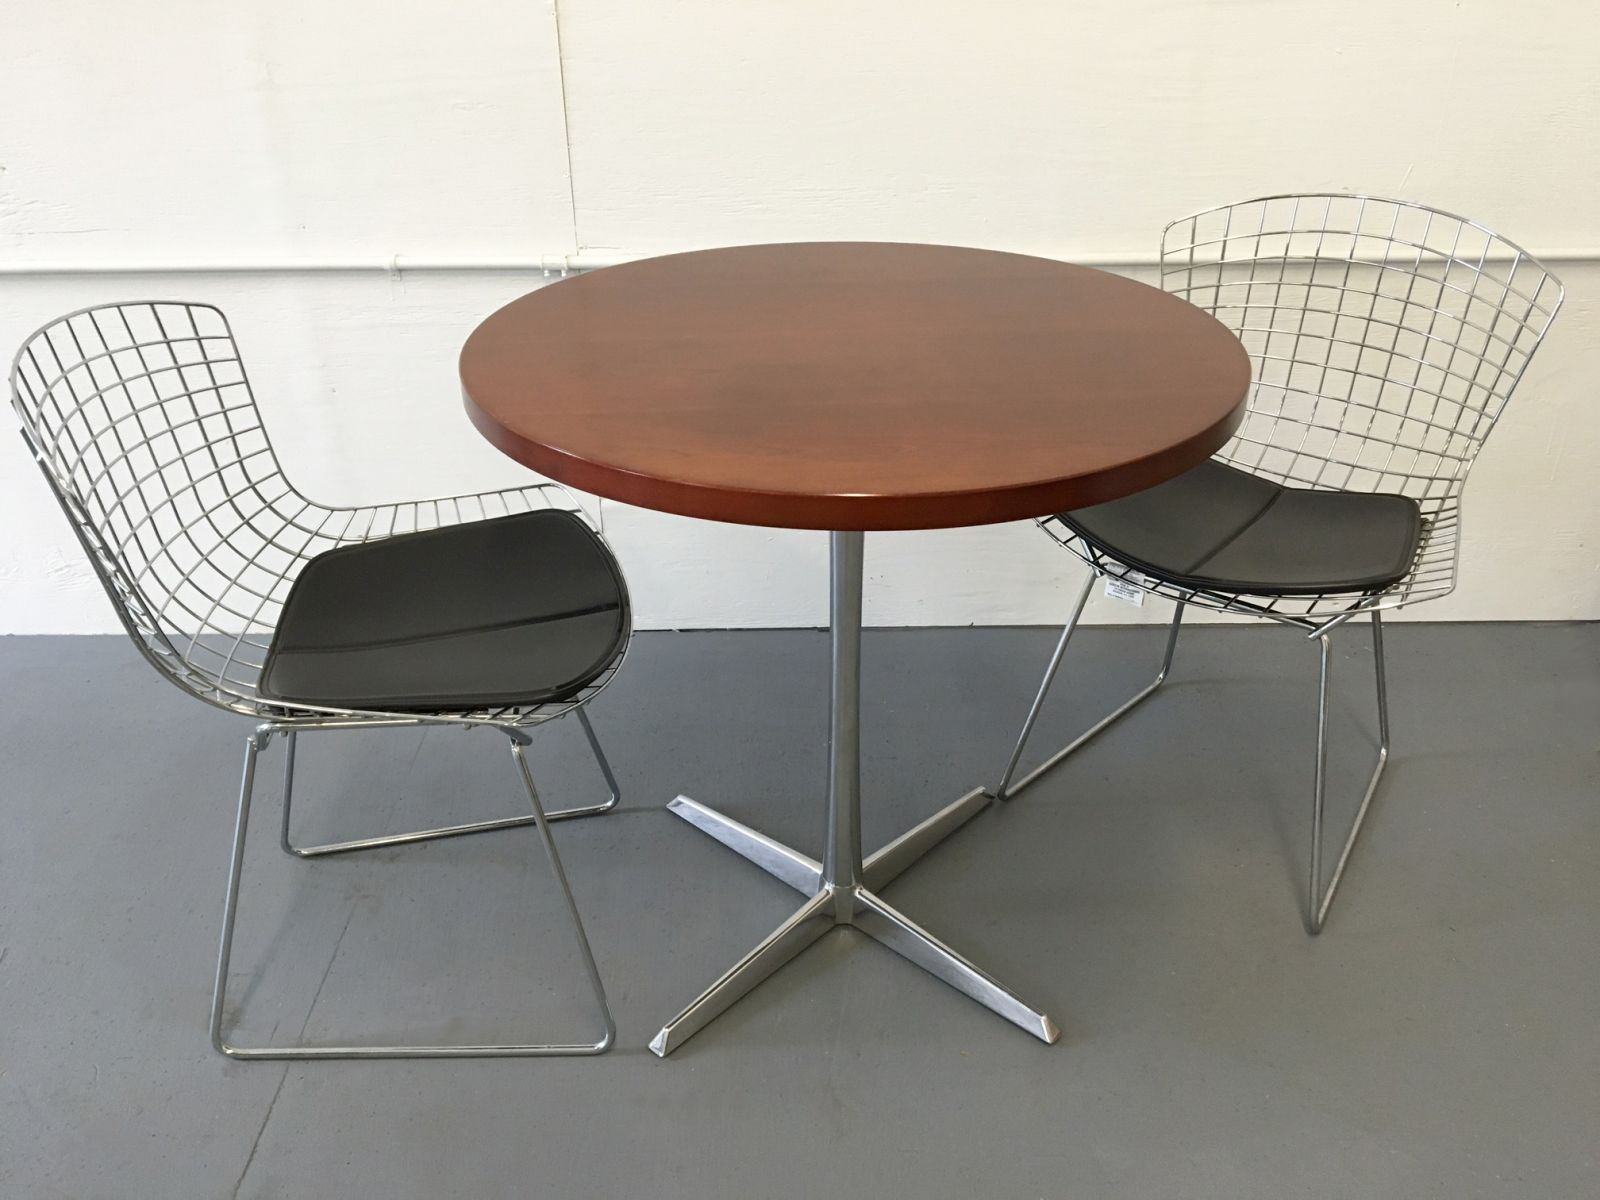 30 Round Cherry Cafe Table T9553c Conklin Office